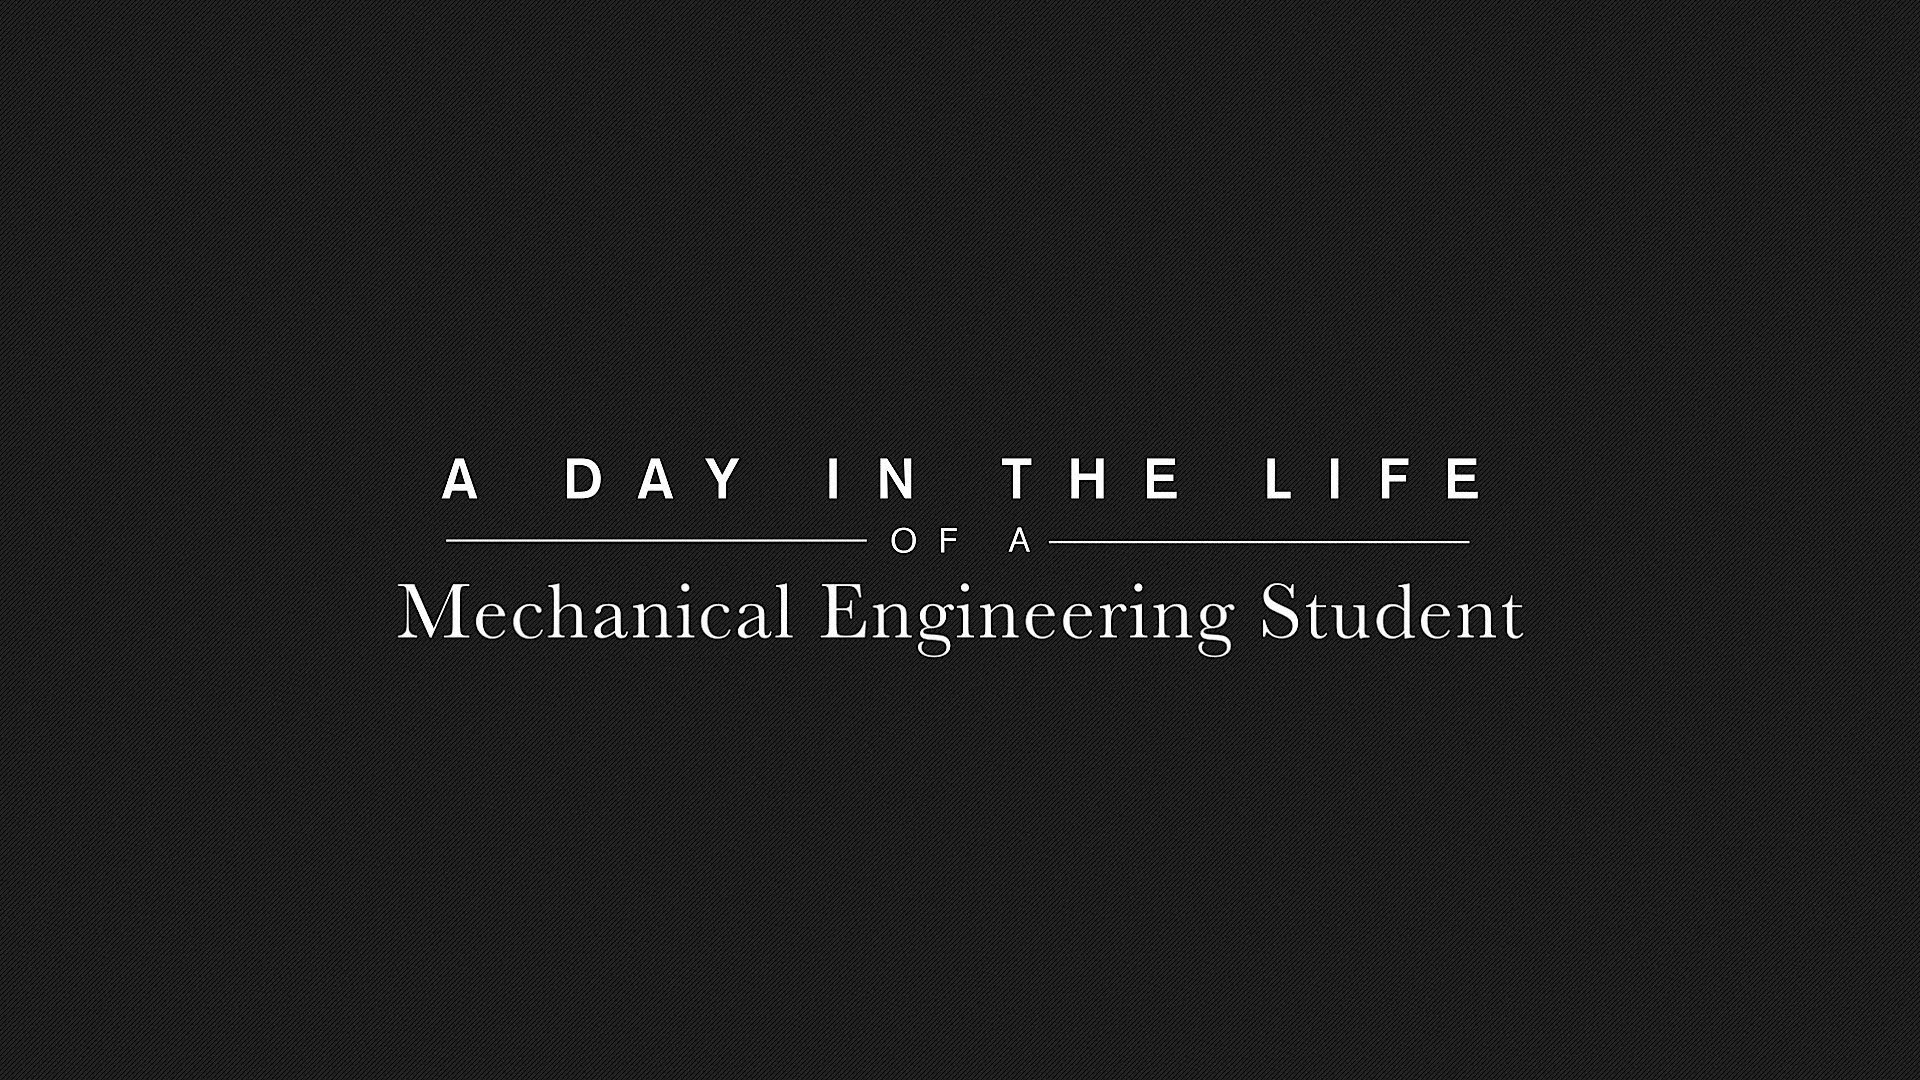 1920x1080 A Day in the Life of a Mechanical Engineering Student